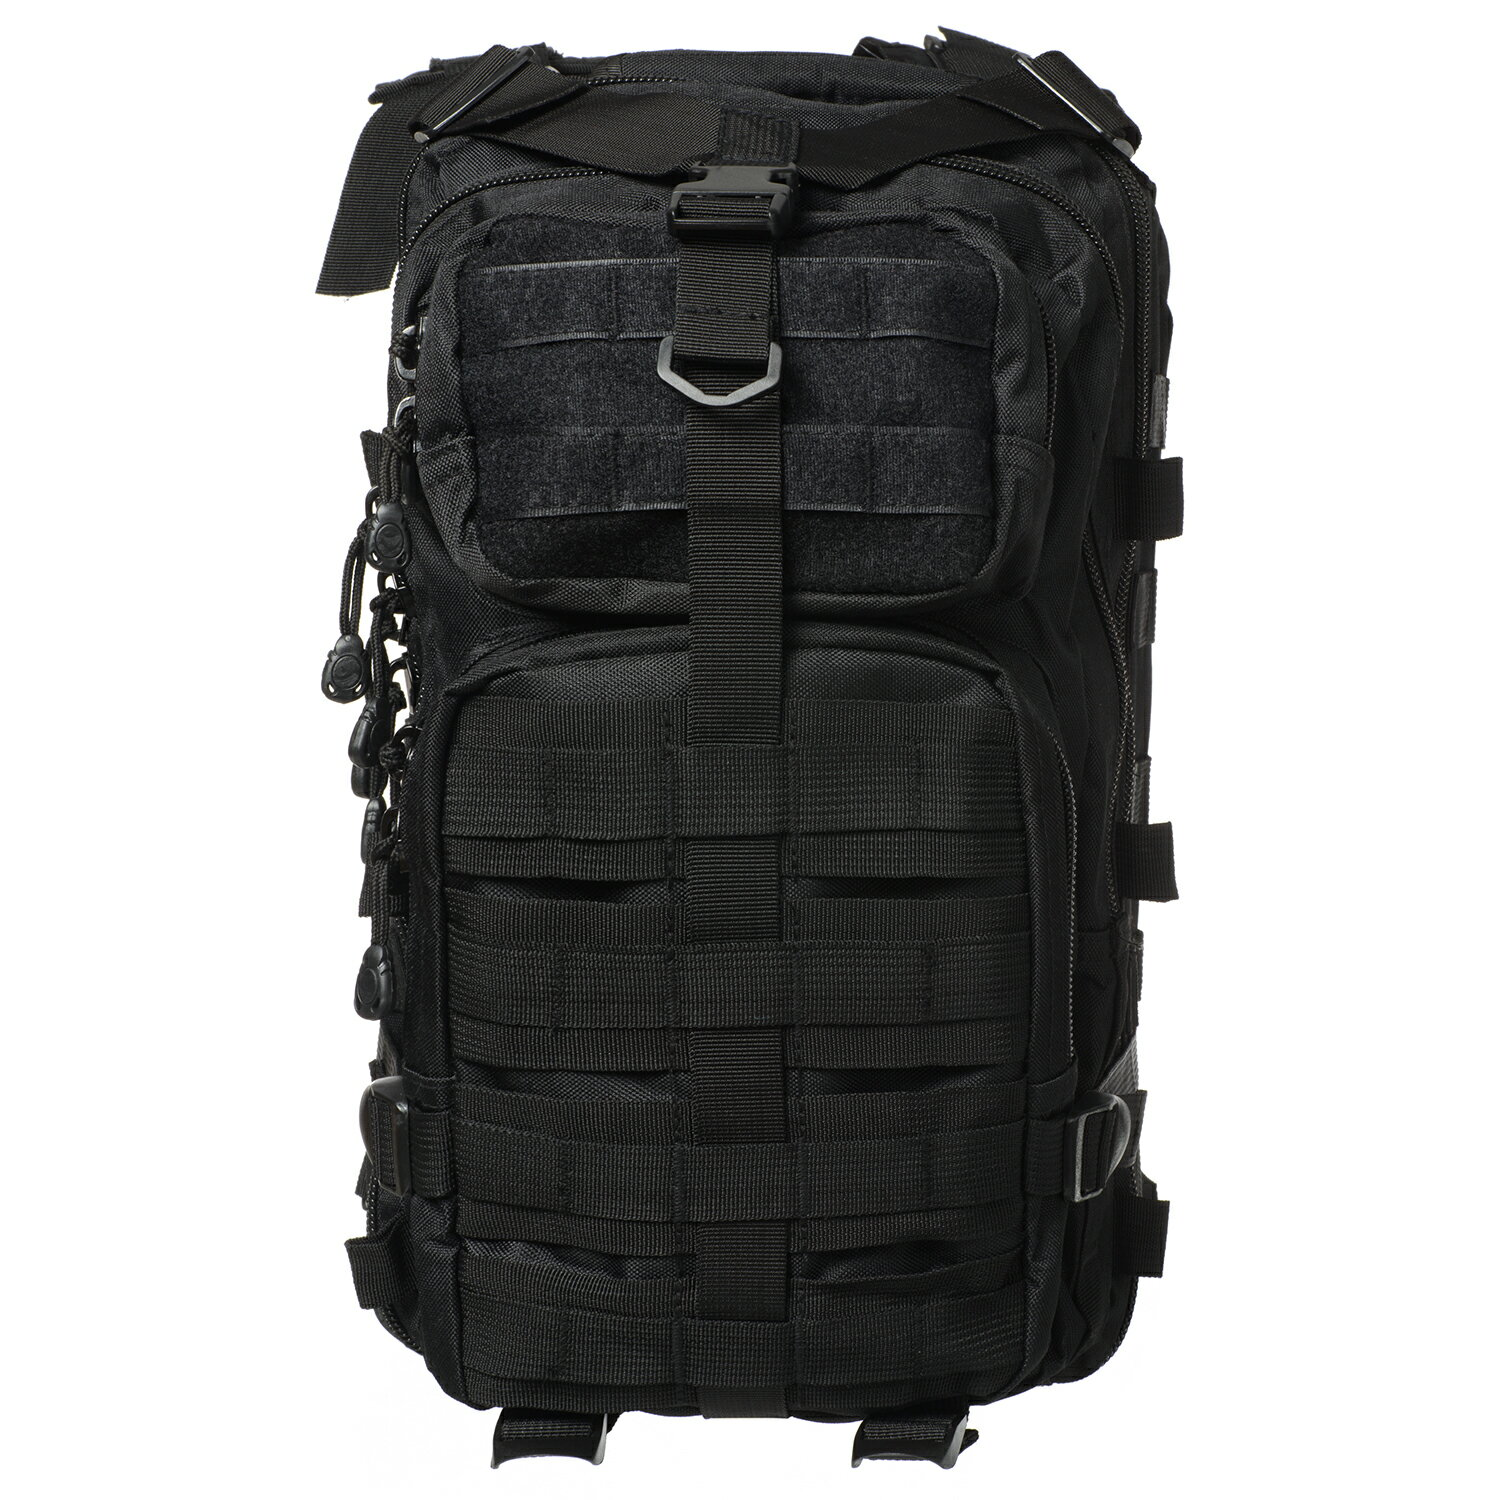 Every Day Carry Military Tactical Large Army 3-Day Assault MOLLE Outdoor Backpack for Hiking - Black 1